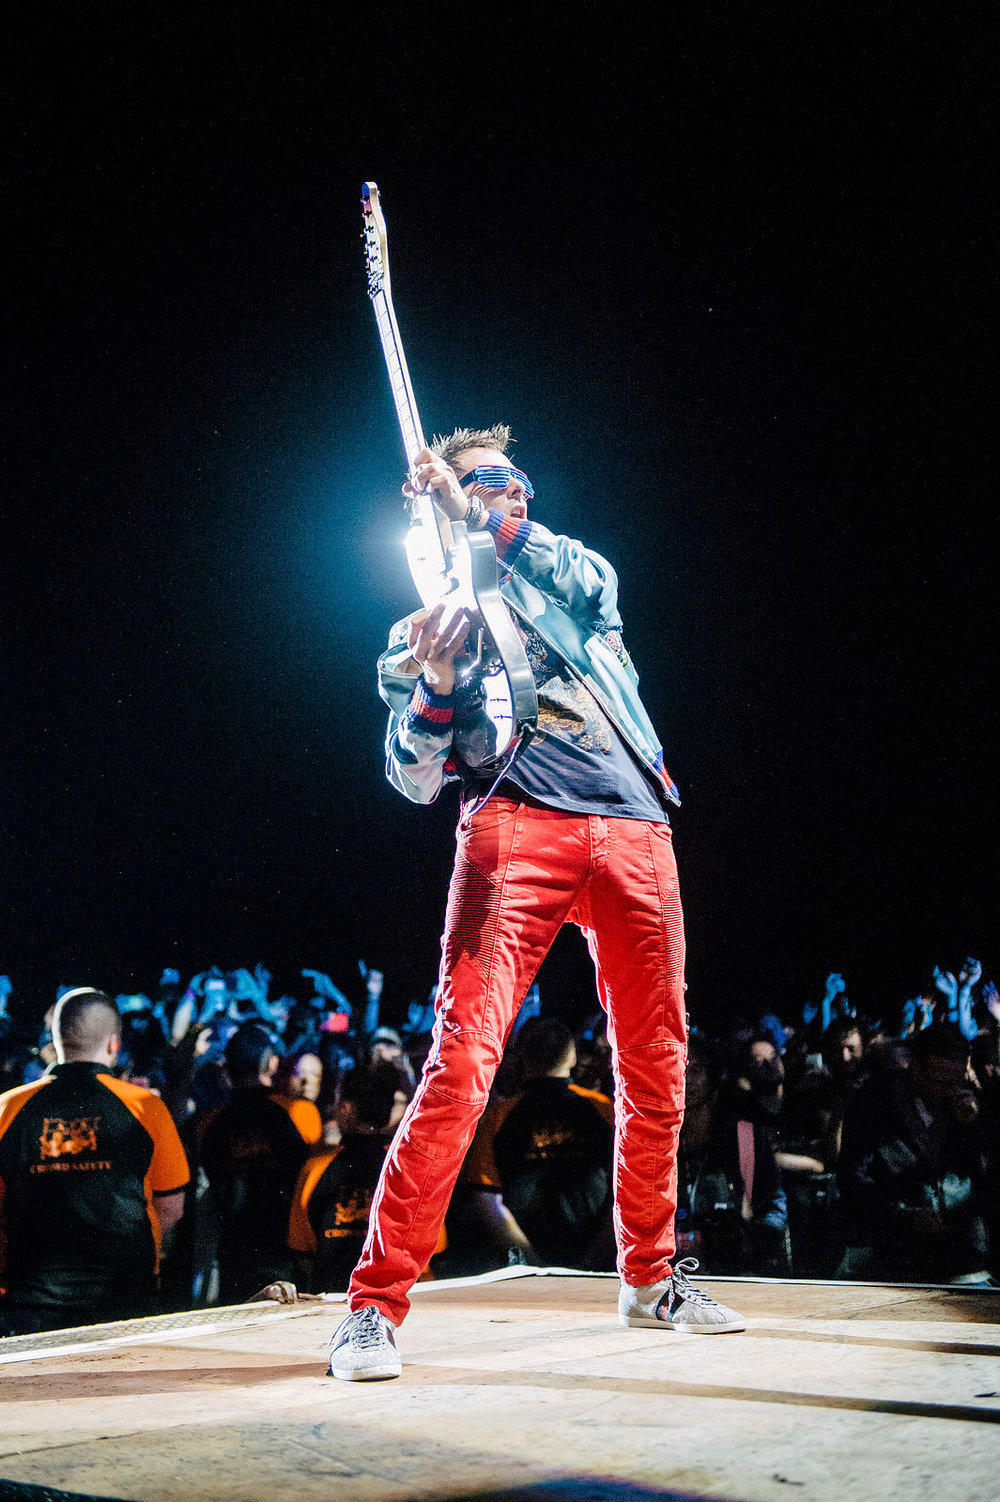 MUSE HEADLINING FRIDAY NIGHT AT LEEDS FESTIVAL 2017 - 25/08/2017  PICTURE BY: MATT EACHUS